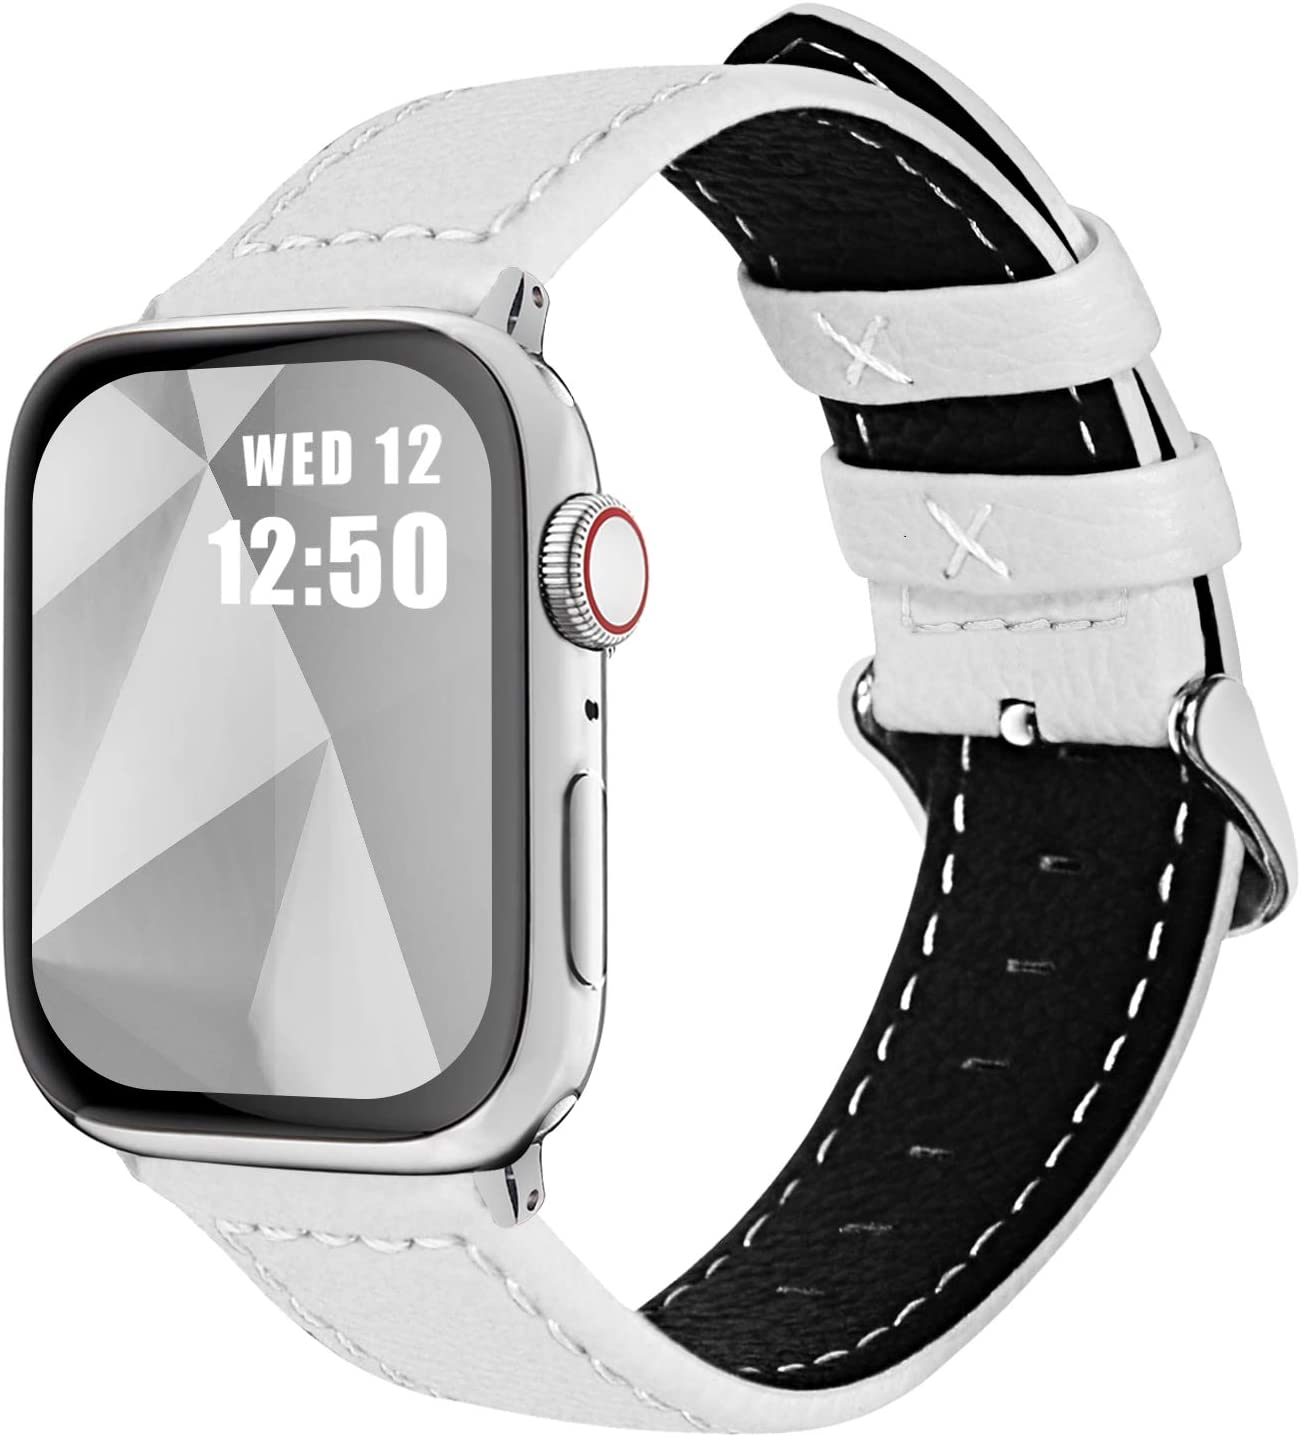 Fullmosa Compatible Apple Watch Band Leather 42mm 44mm 38mm 40mm for iWatch SE & Series 6/5/4/3/2/1,42mm/44mm White + Silver Buckle